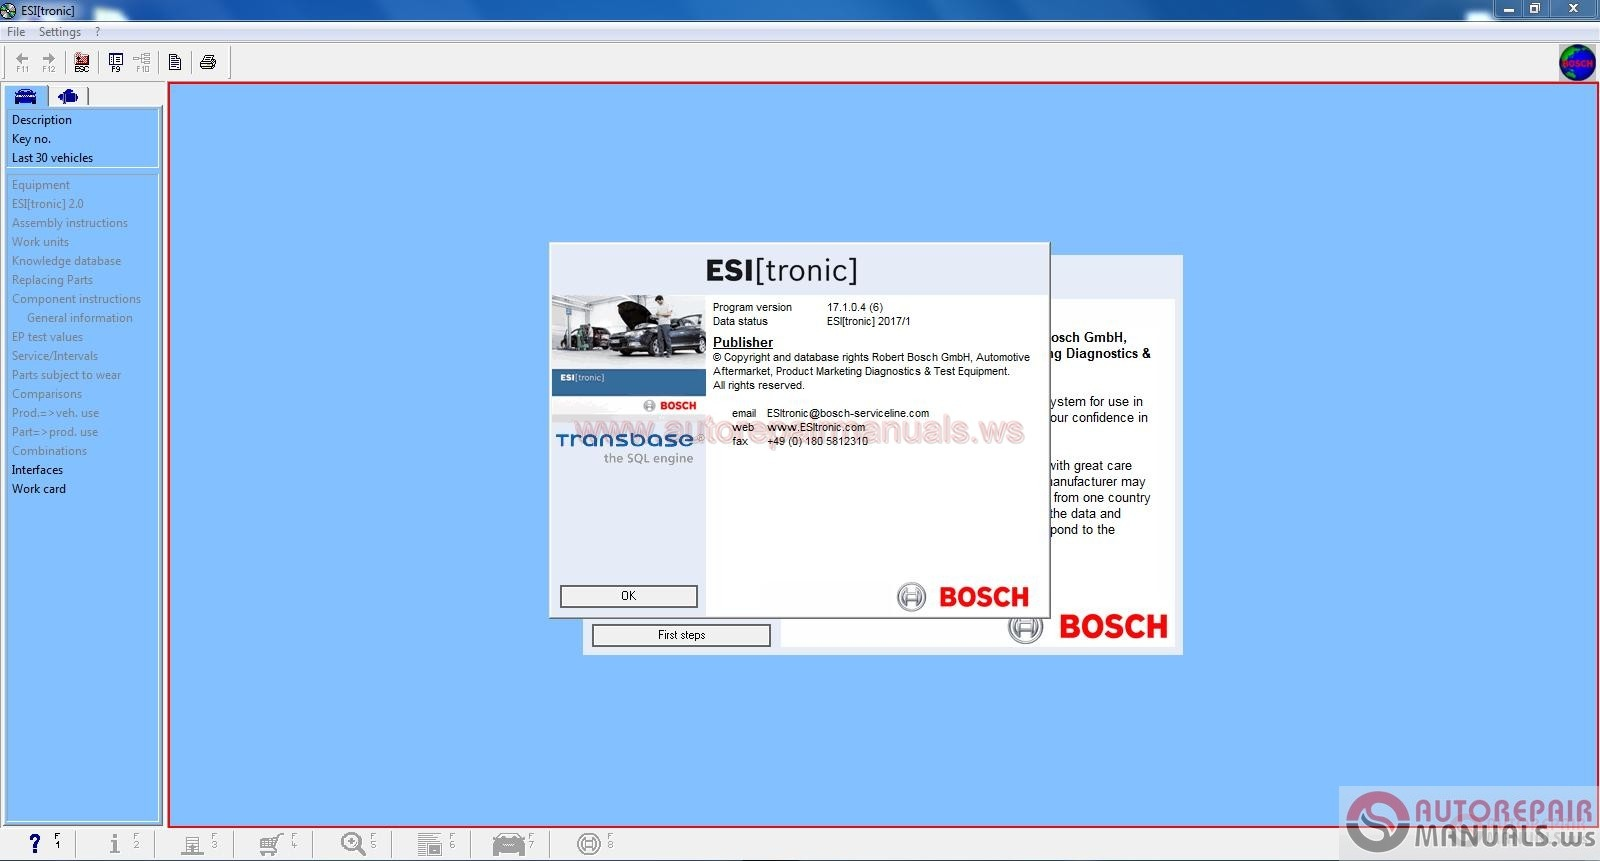 Bosch ESI [tronic] v2.0 [01.2017] | Auto Repair Manual ...